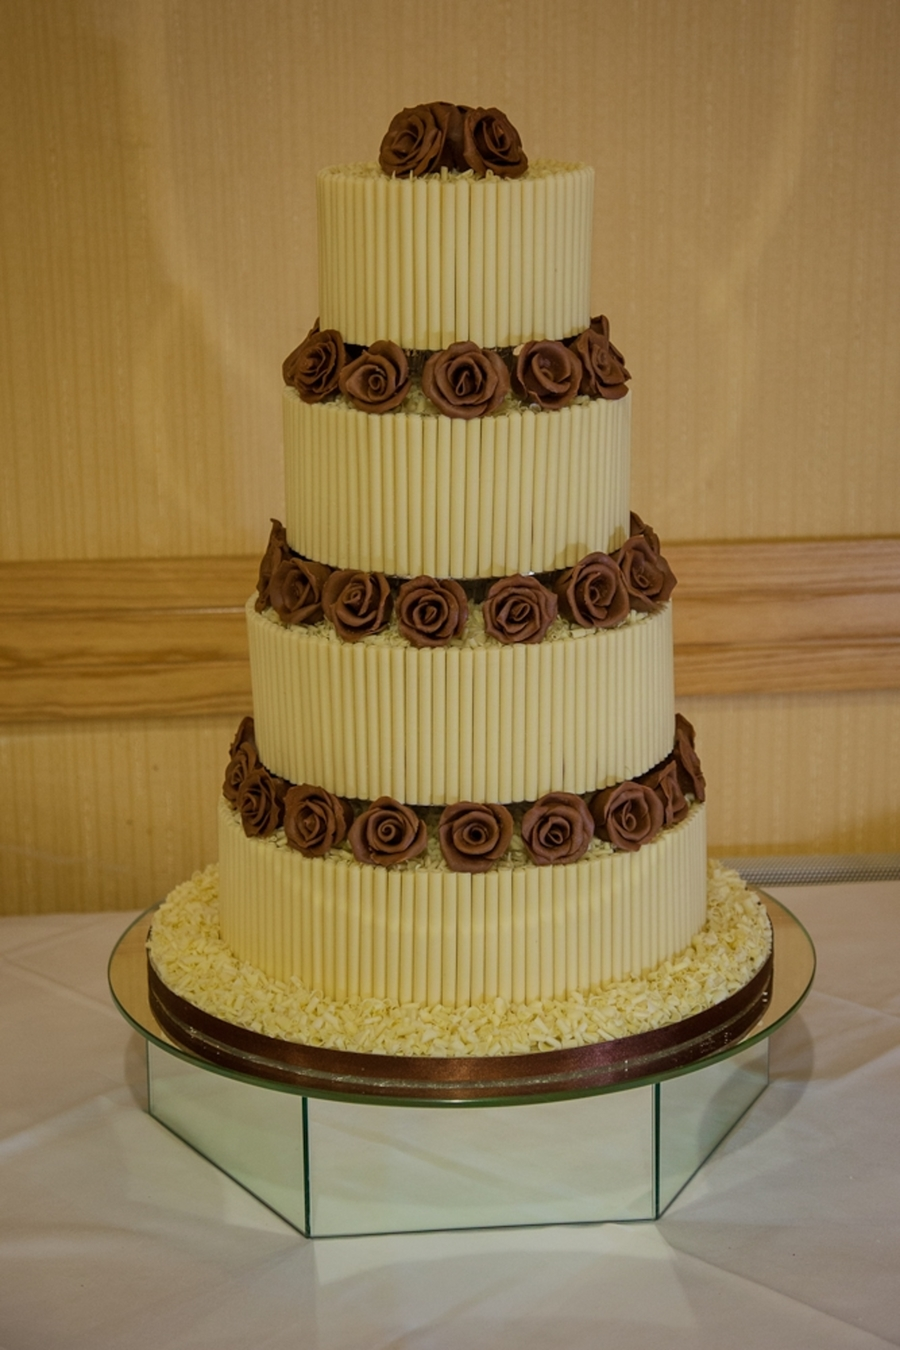 4 tier chocolate wedding cake recipe 4 tier chocolate wedding cake cakecentral 10372